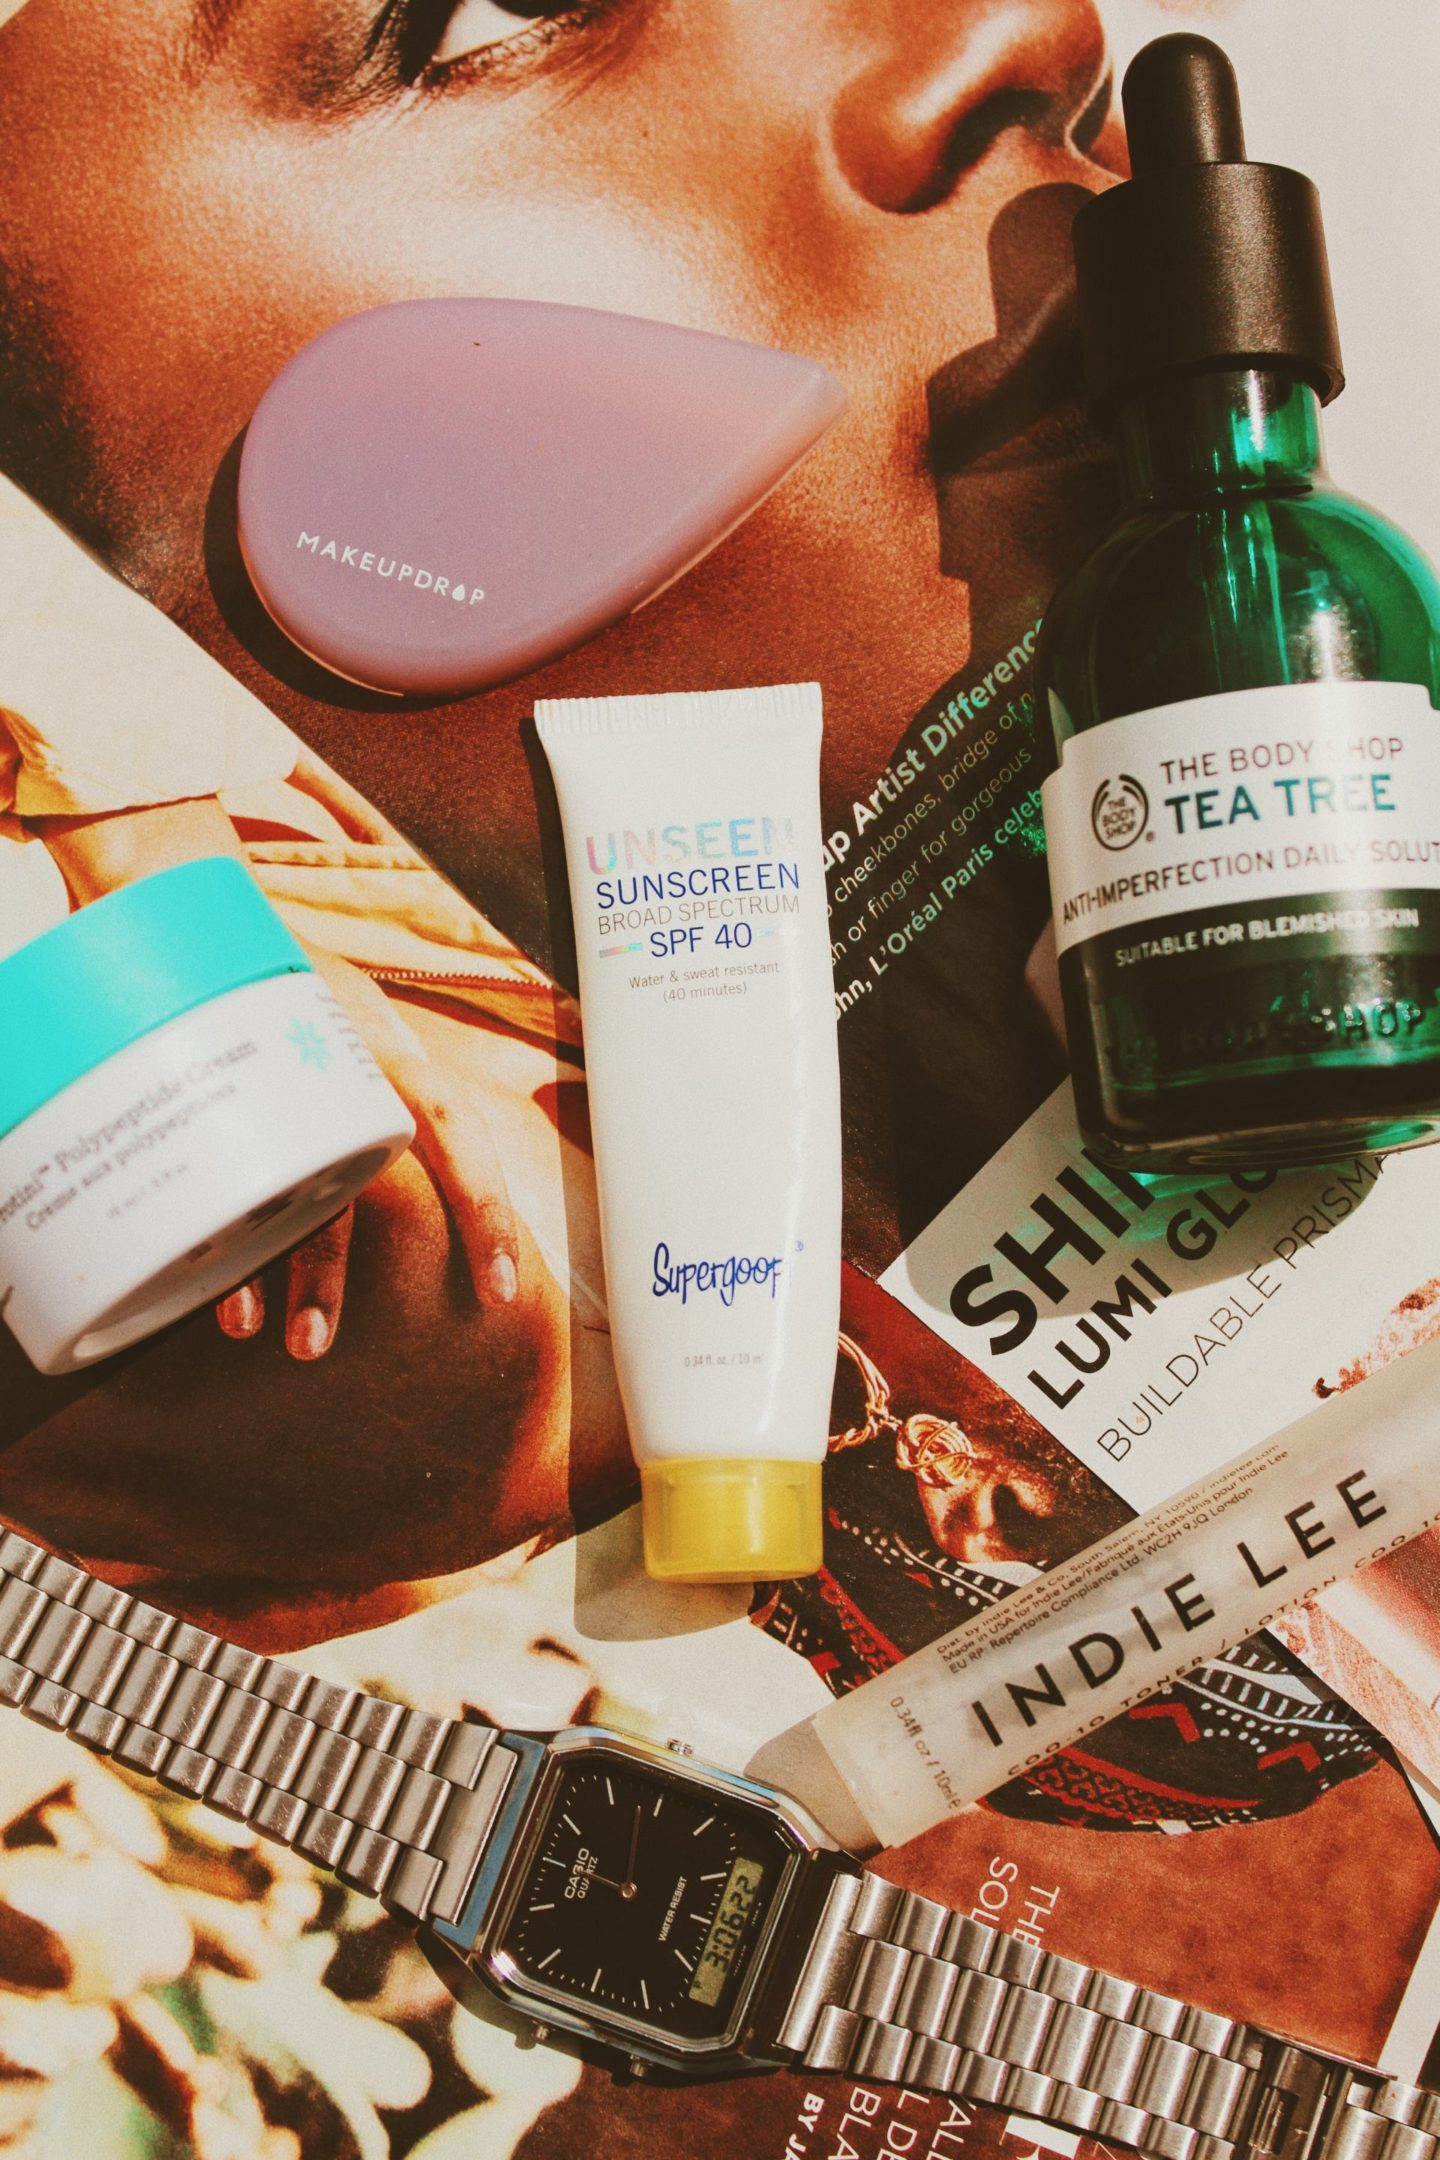 a close up shot of Supergoop Unseen Sunscreen, The Body Shop Tea Tree Anti-Imperfection Daily Solution, Indie Lee CoQ-10 Toner, MakeupDrop Applicator, Drunk Elephant Protini Polypeptide Cream, Casio Silver Watch